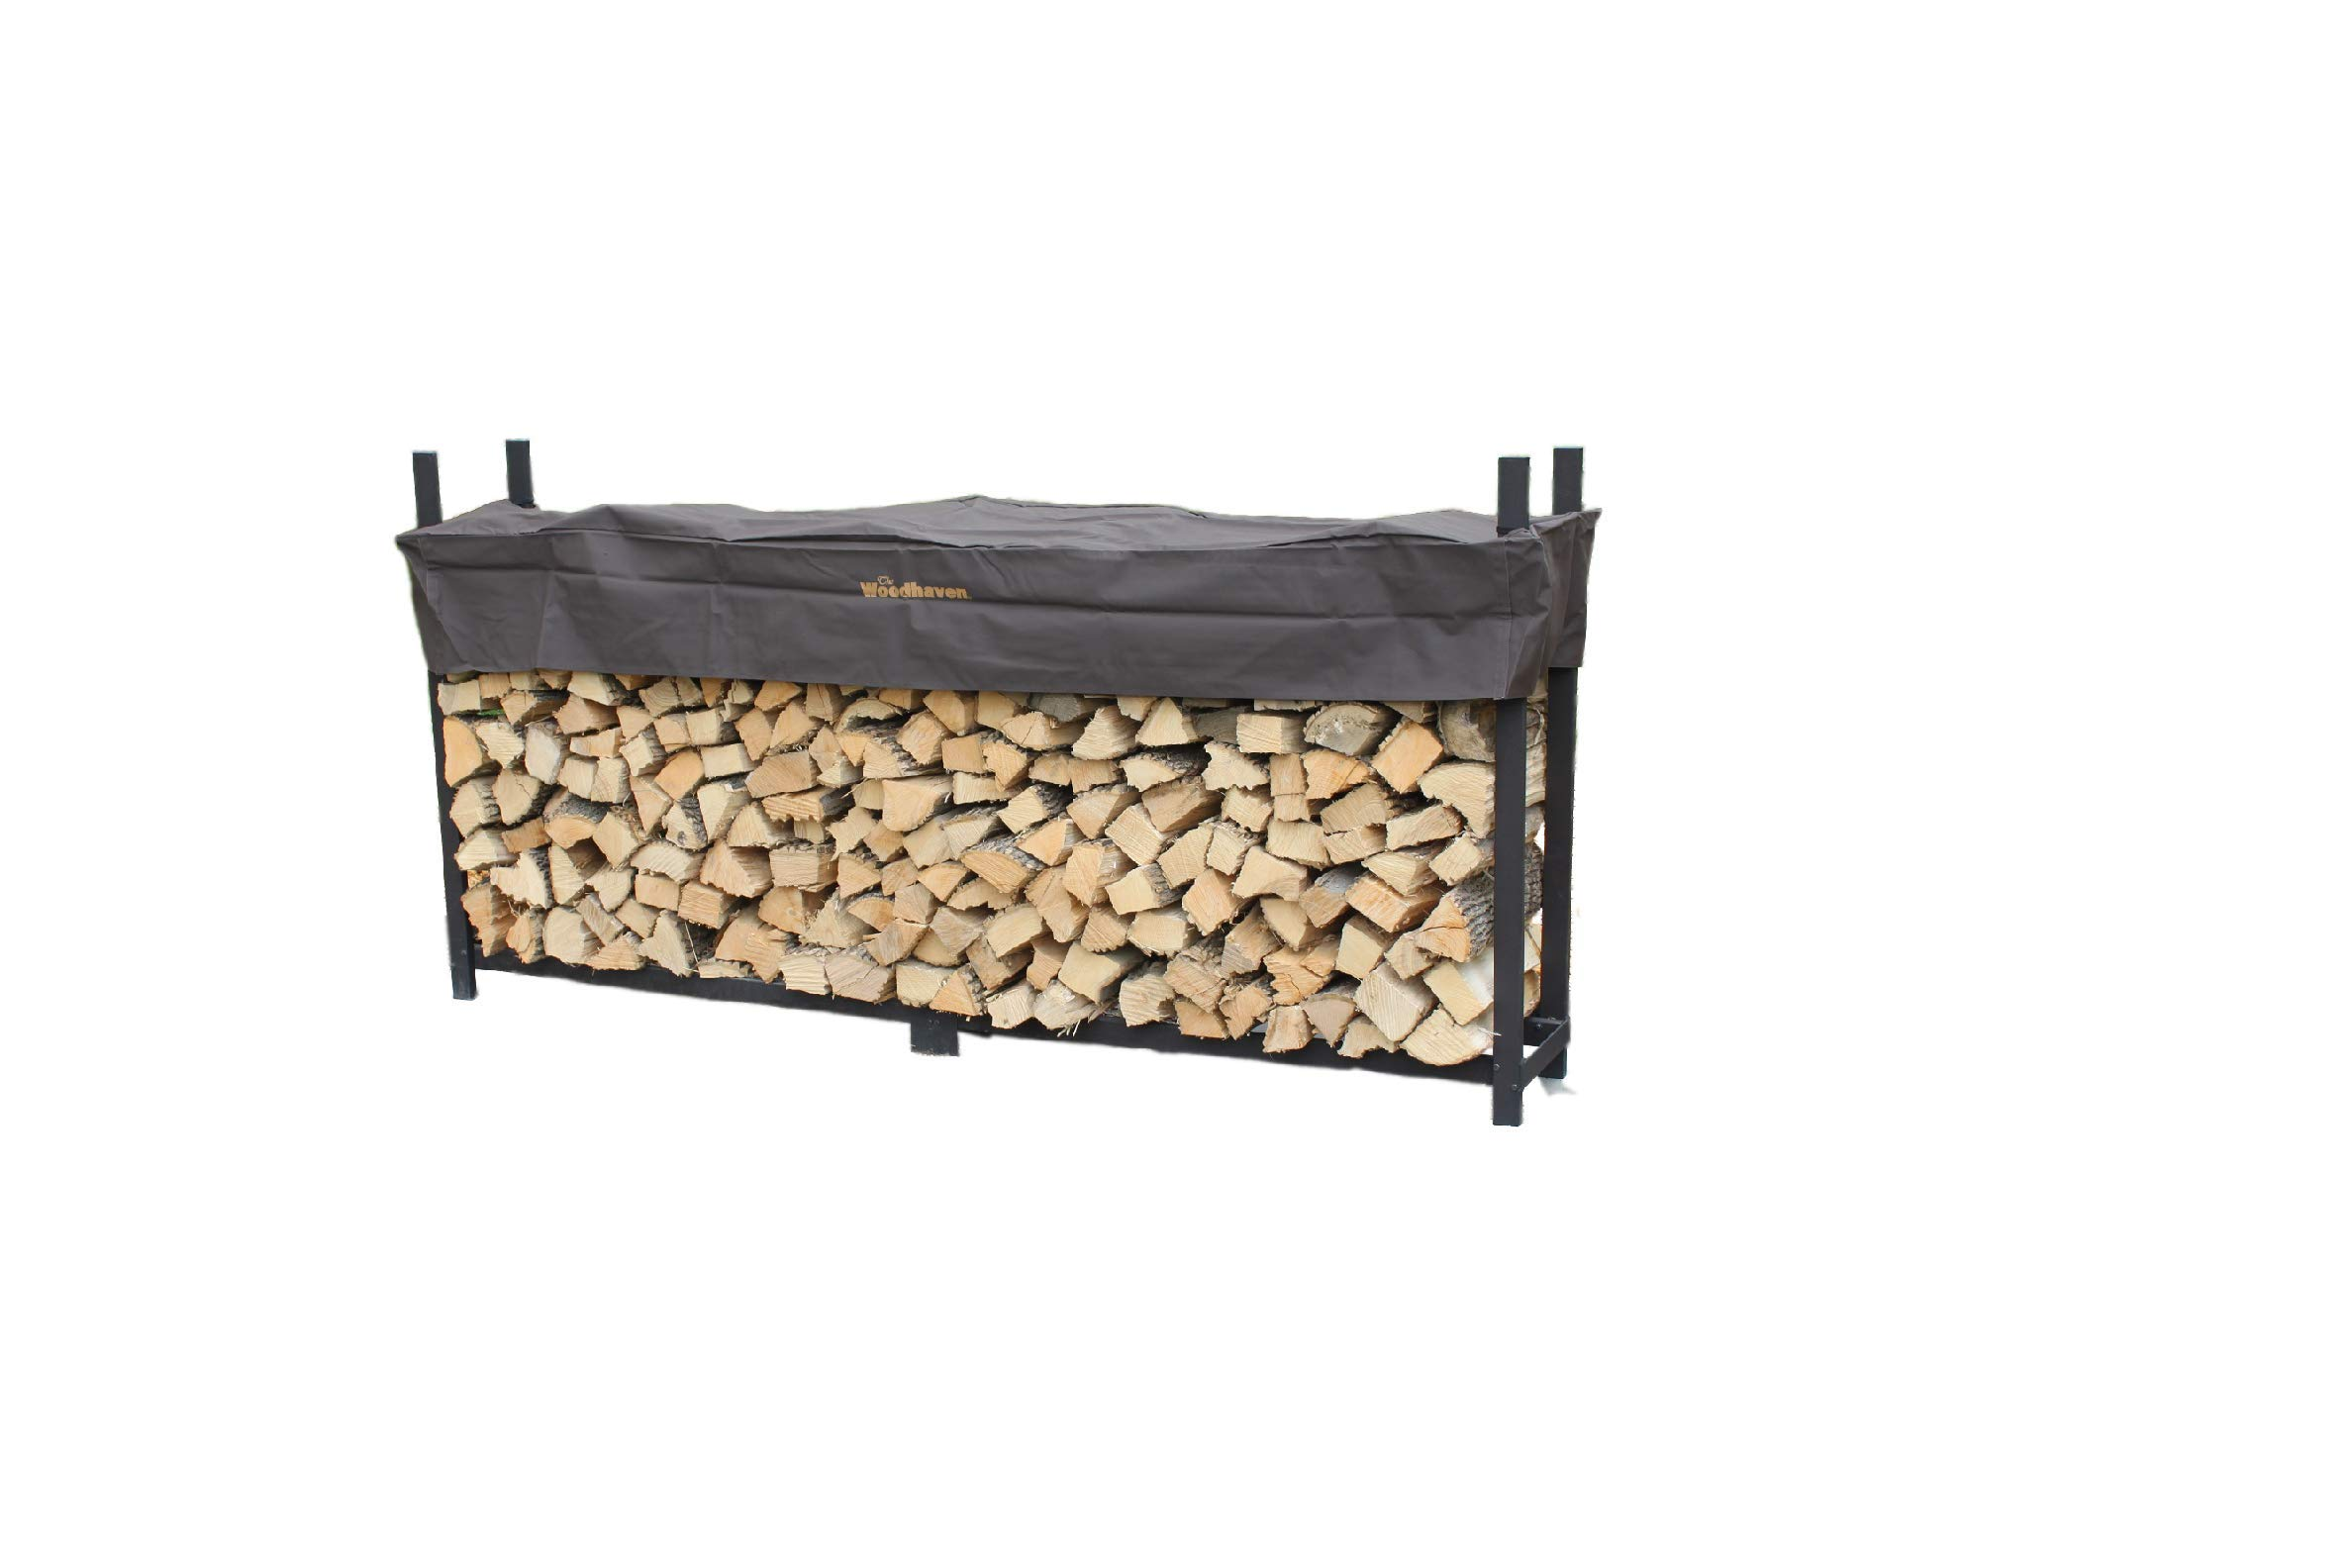 Woodhaven 8 Foot Brown Firewood Log Rack with Cover by Woodhaven